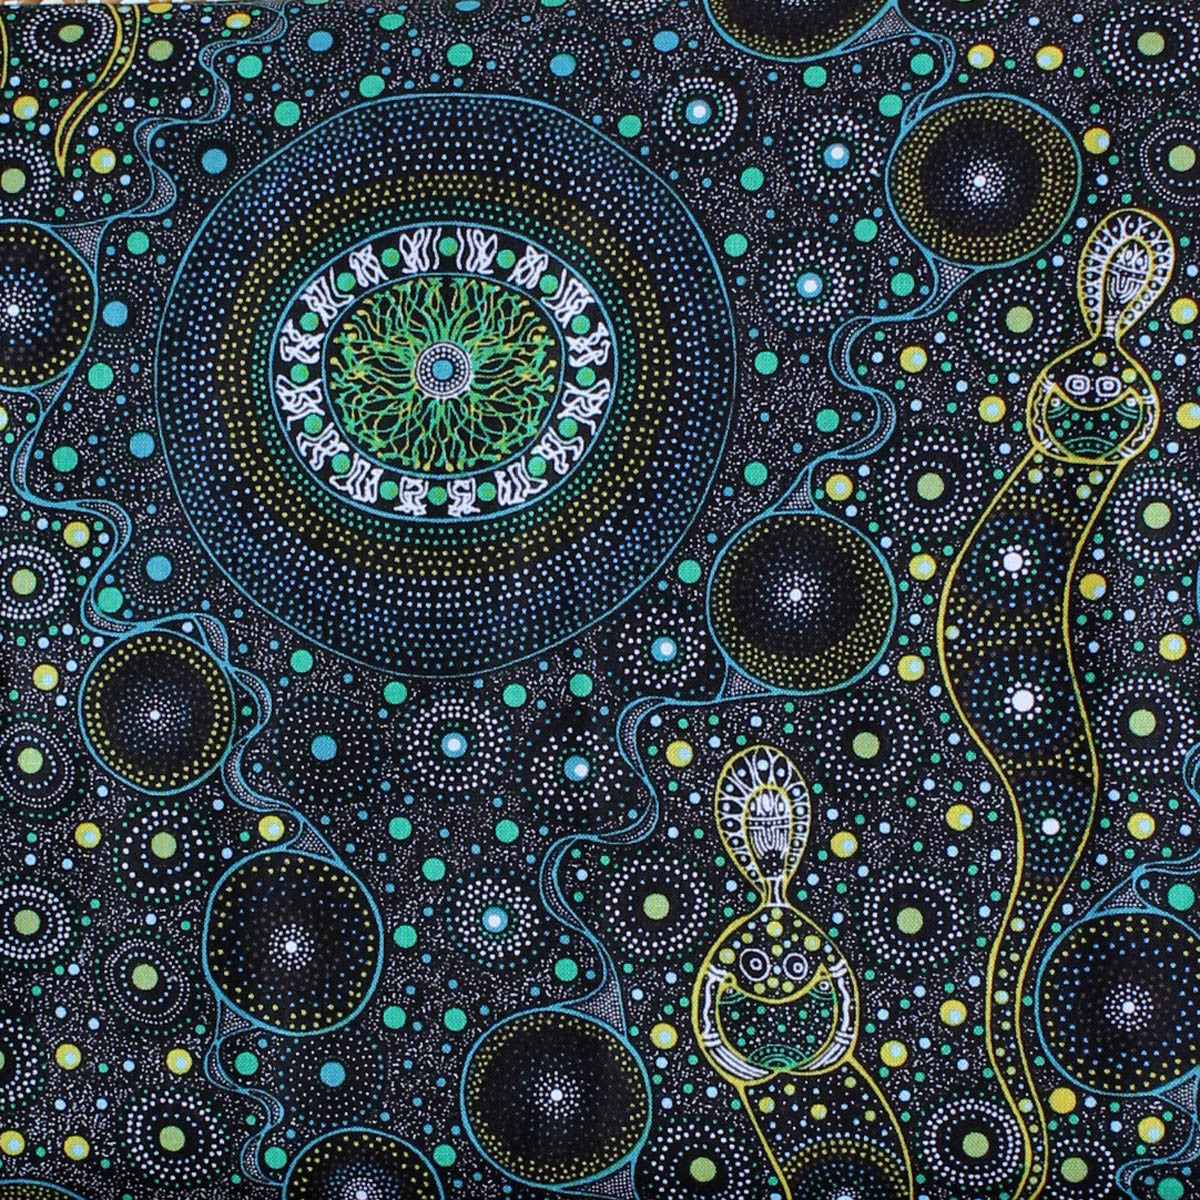 SPIRITUAL WOMEN GRAY by Aboriginal Artist CHANDA CONWAY